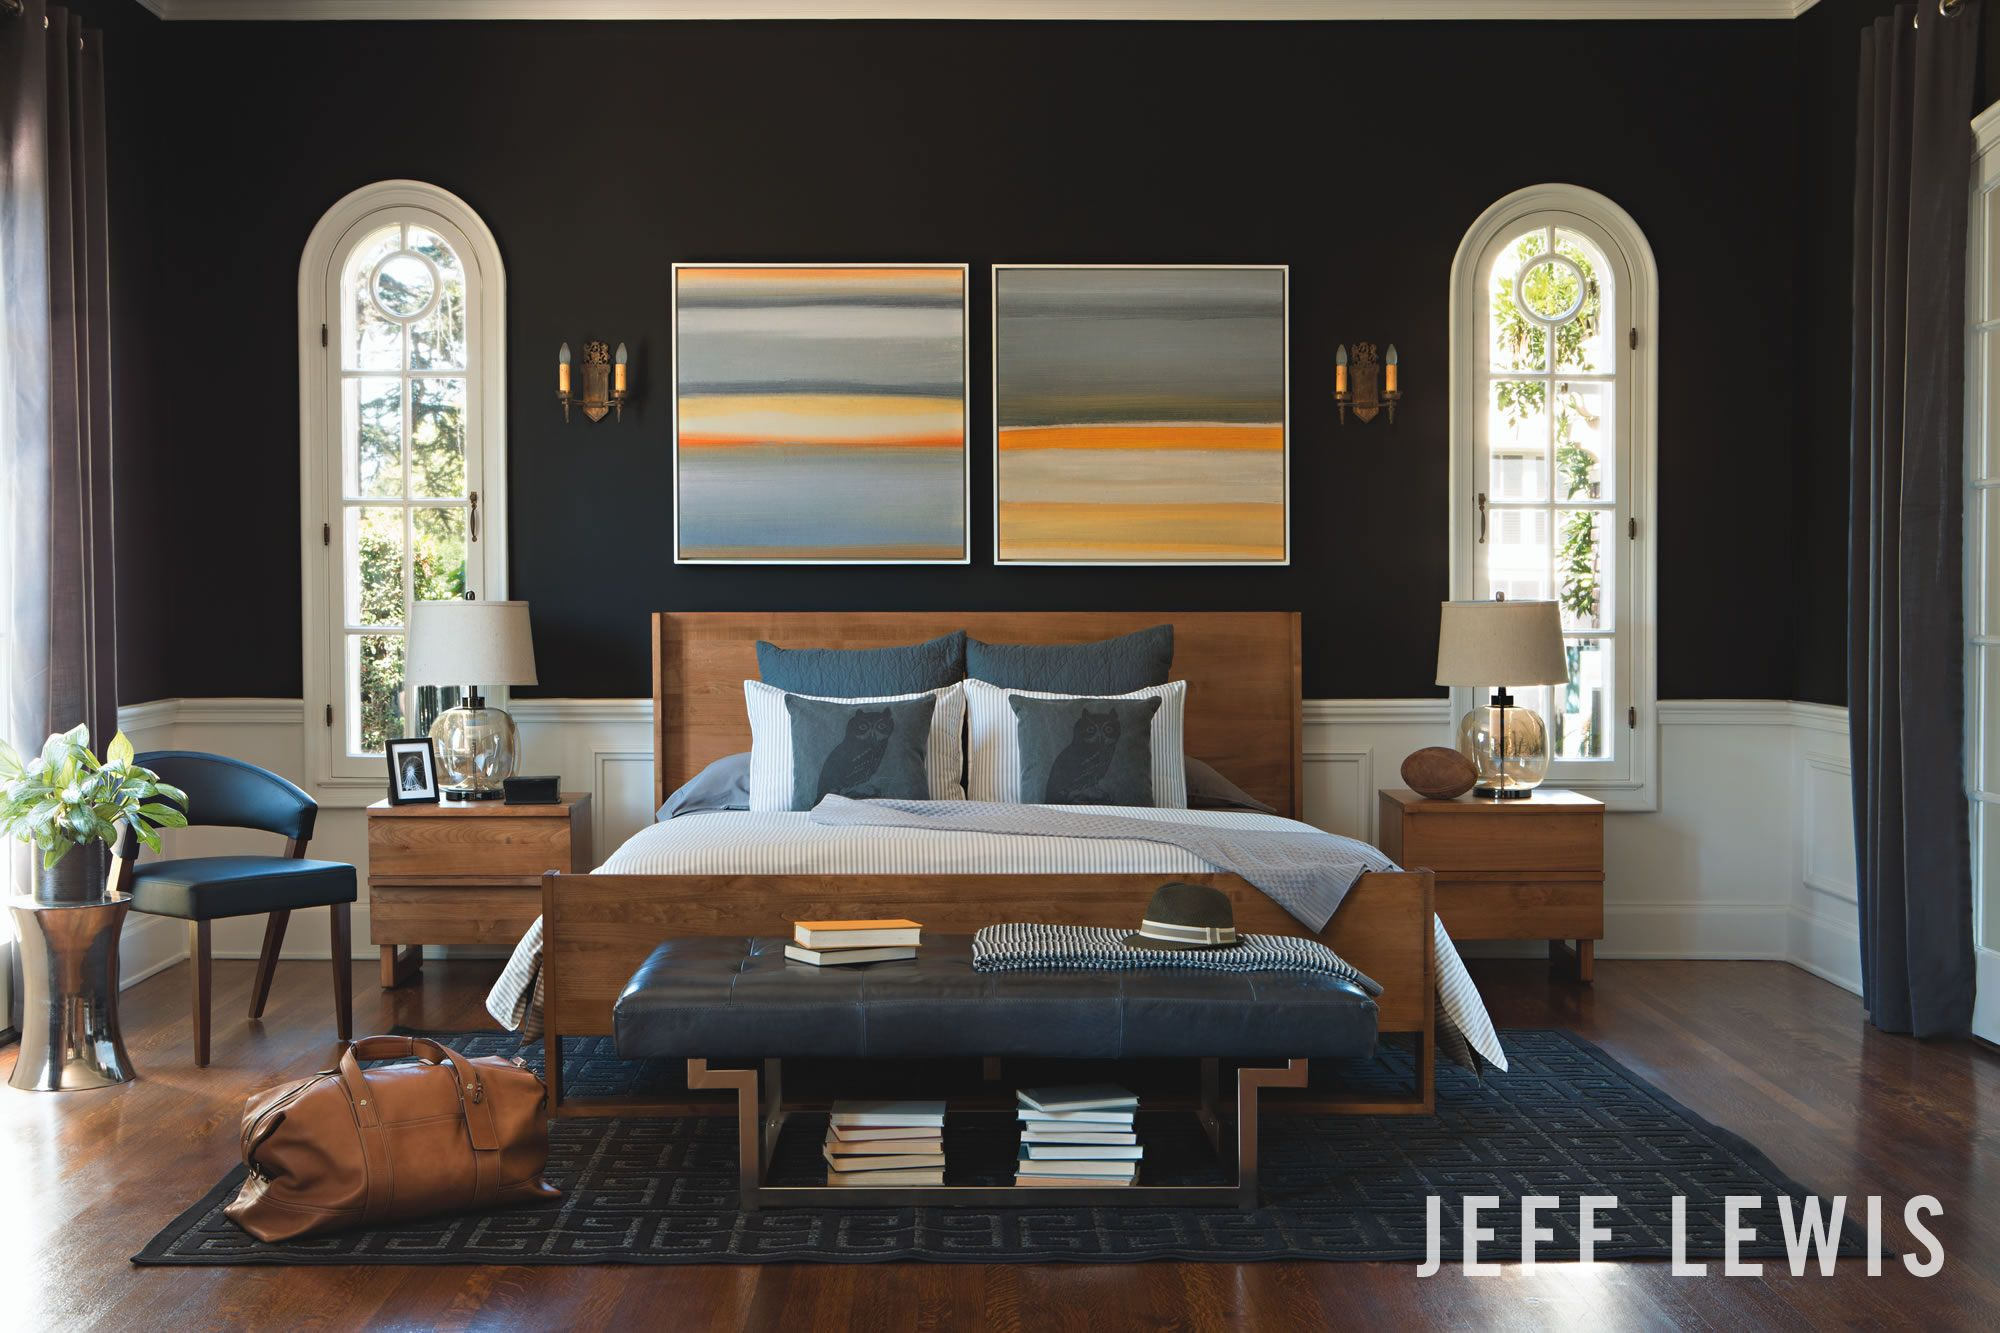 Jeff Lewis Paint Knight  Flipping Out  Pinterest  Jeff Lewis Adorable Jeff Lewis Bedroom Designs Review